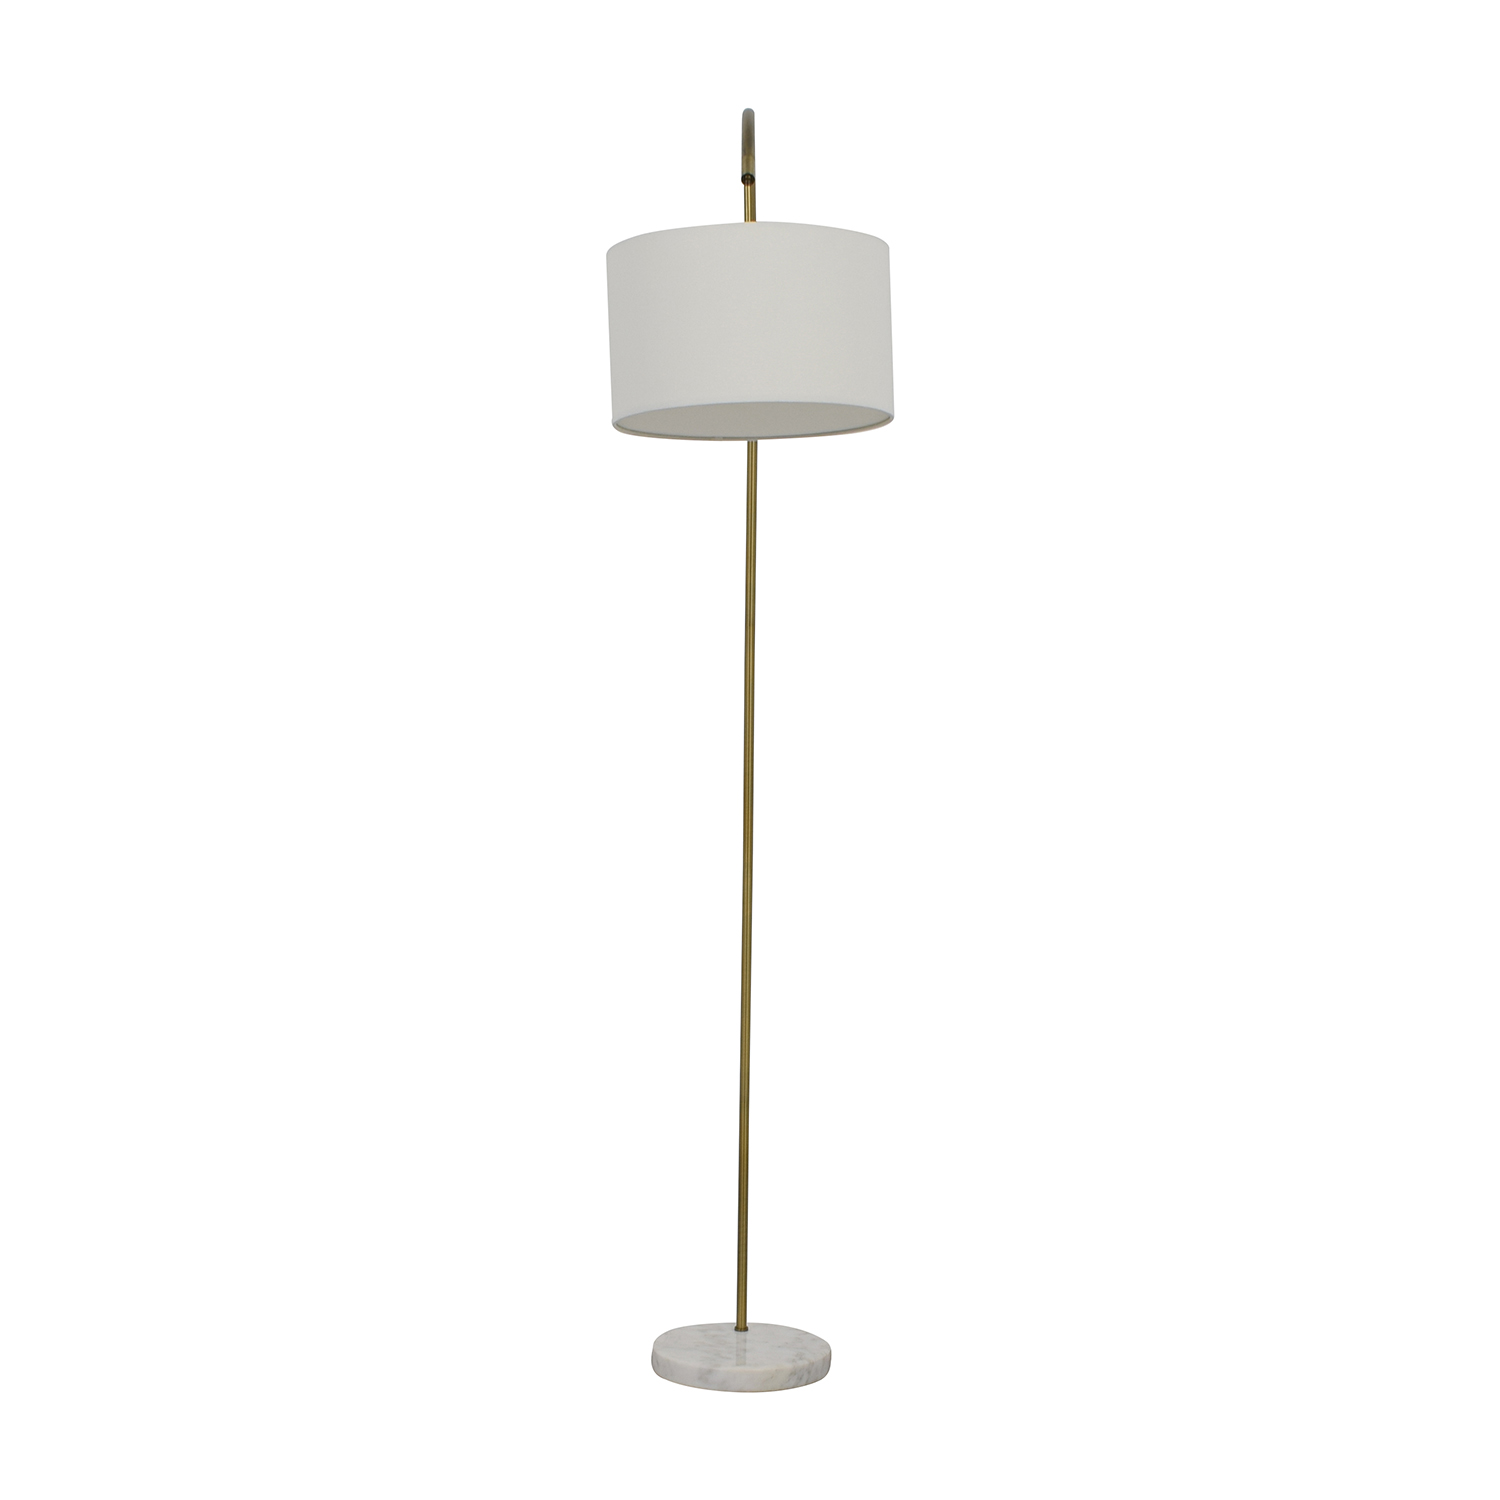 Lamps used lamps for sale - Arc floor lamps ikea ...